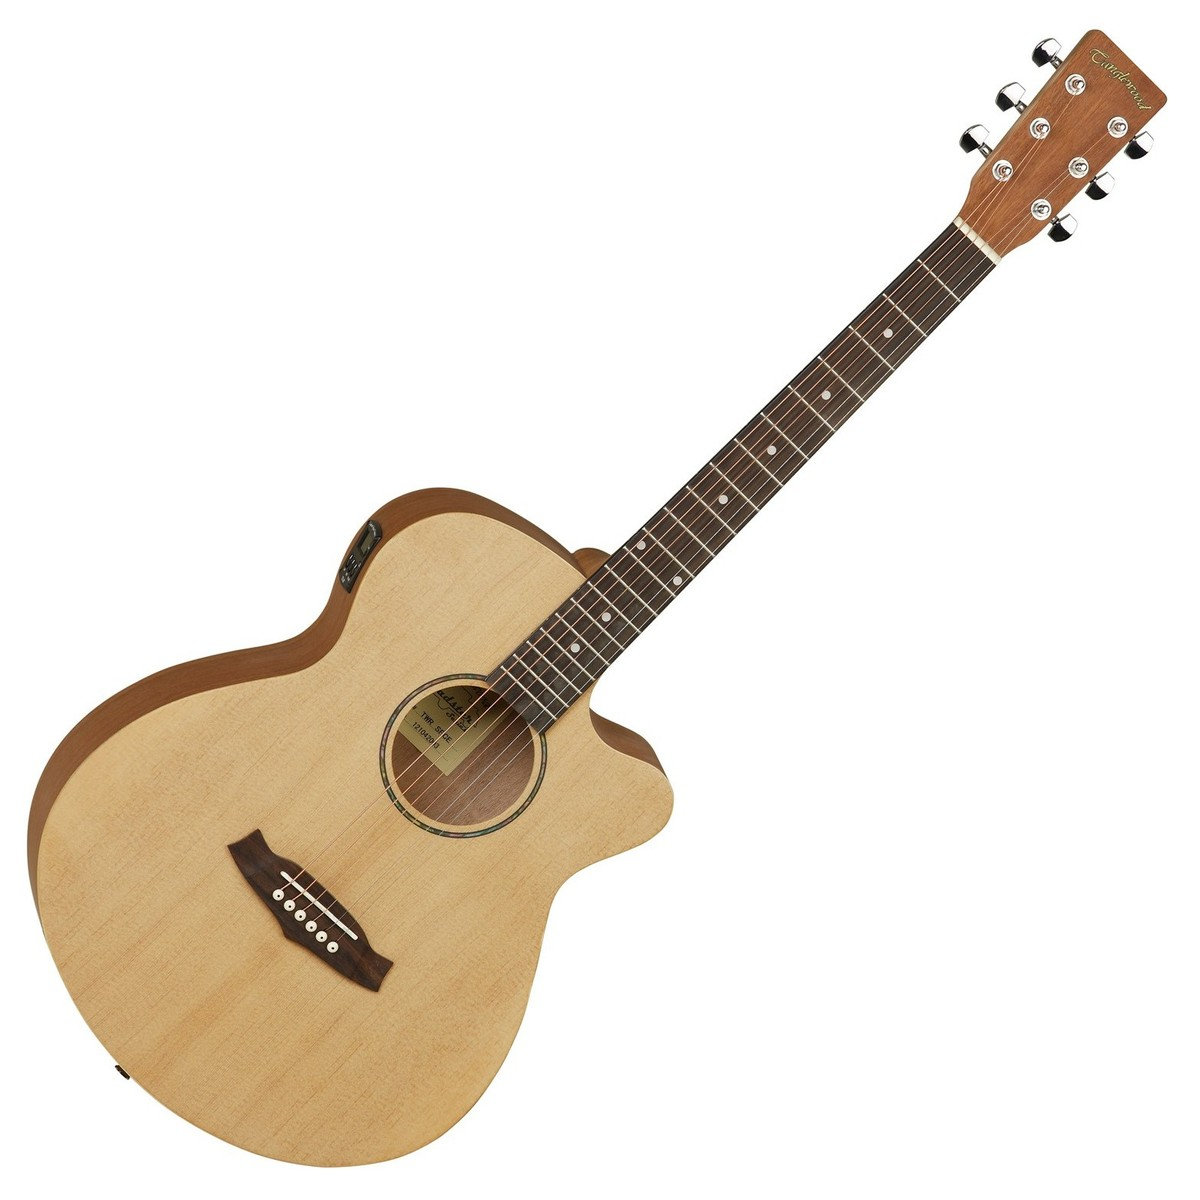 Tanglewood Roadster TWR SFCE, Western guitar (Naturlig satin)